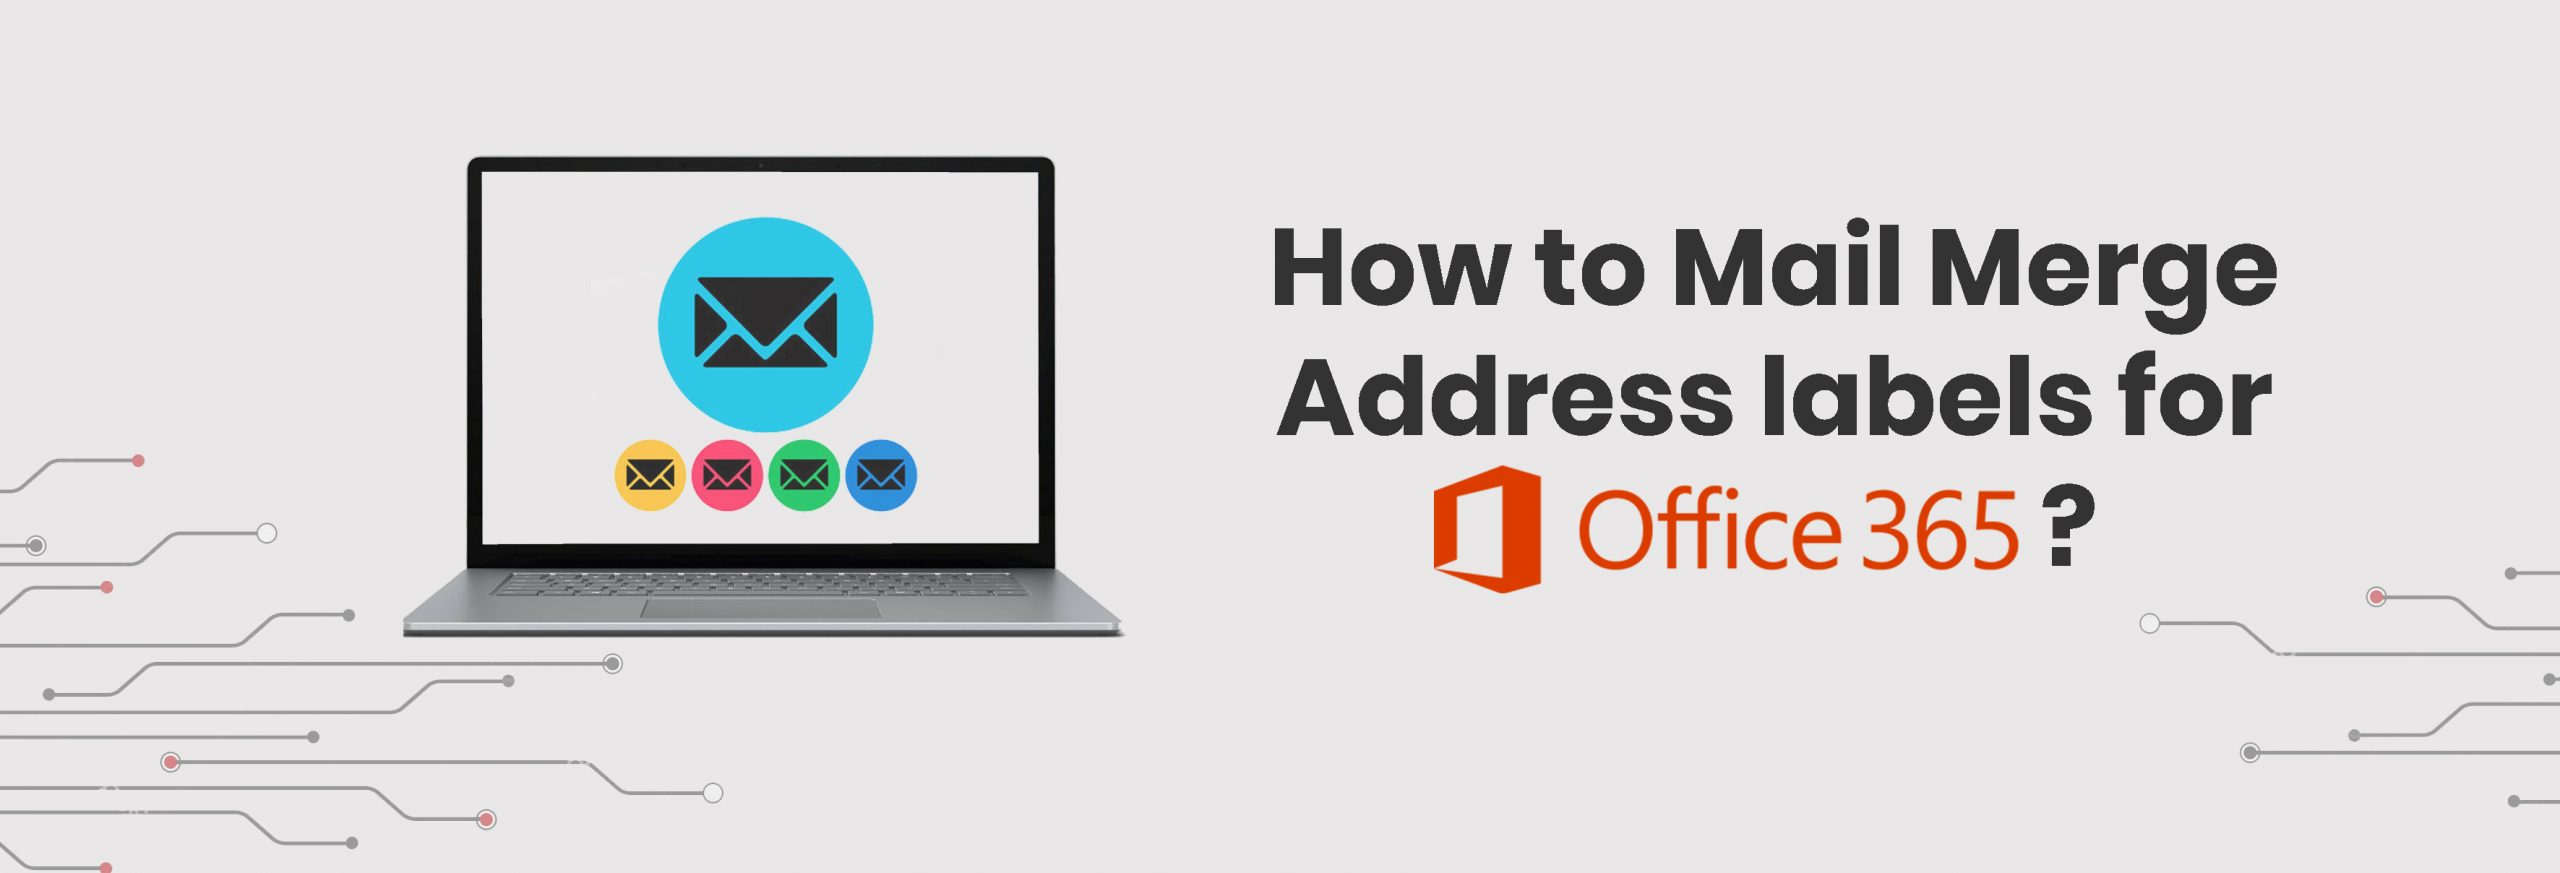 How to Mail Merge Address Labels for Office 365